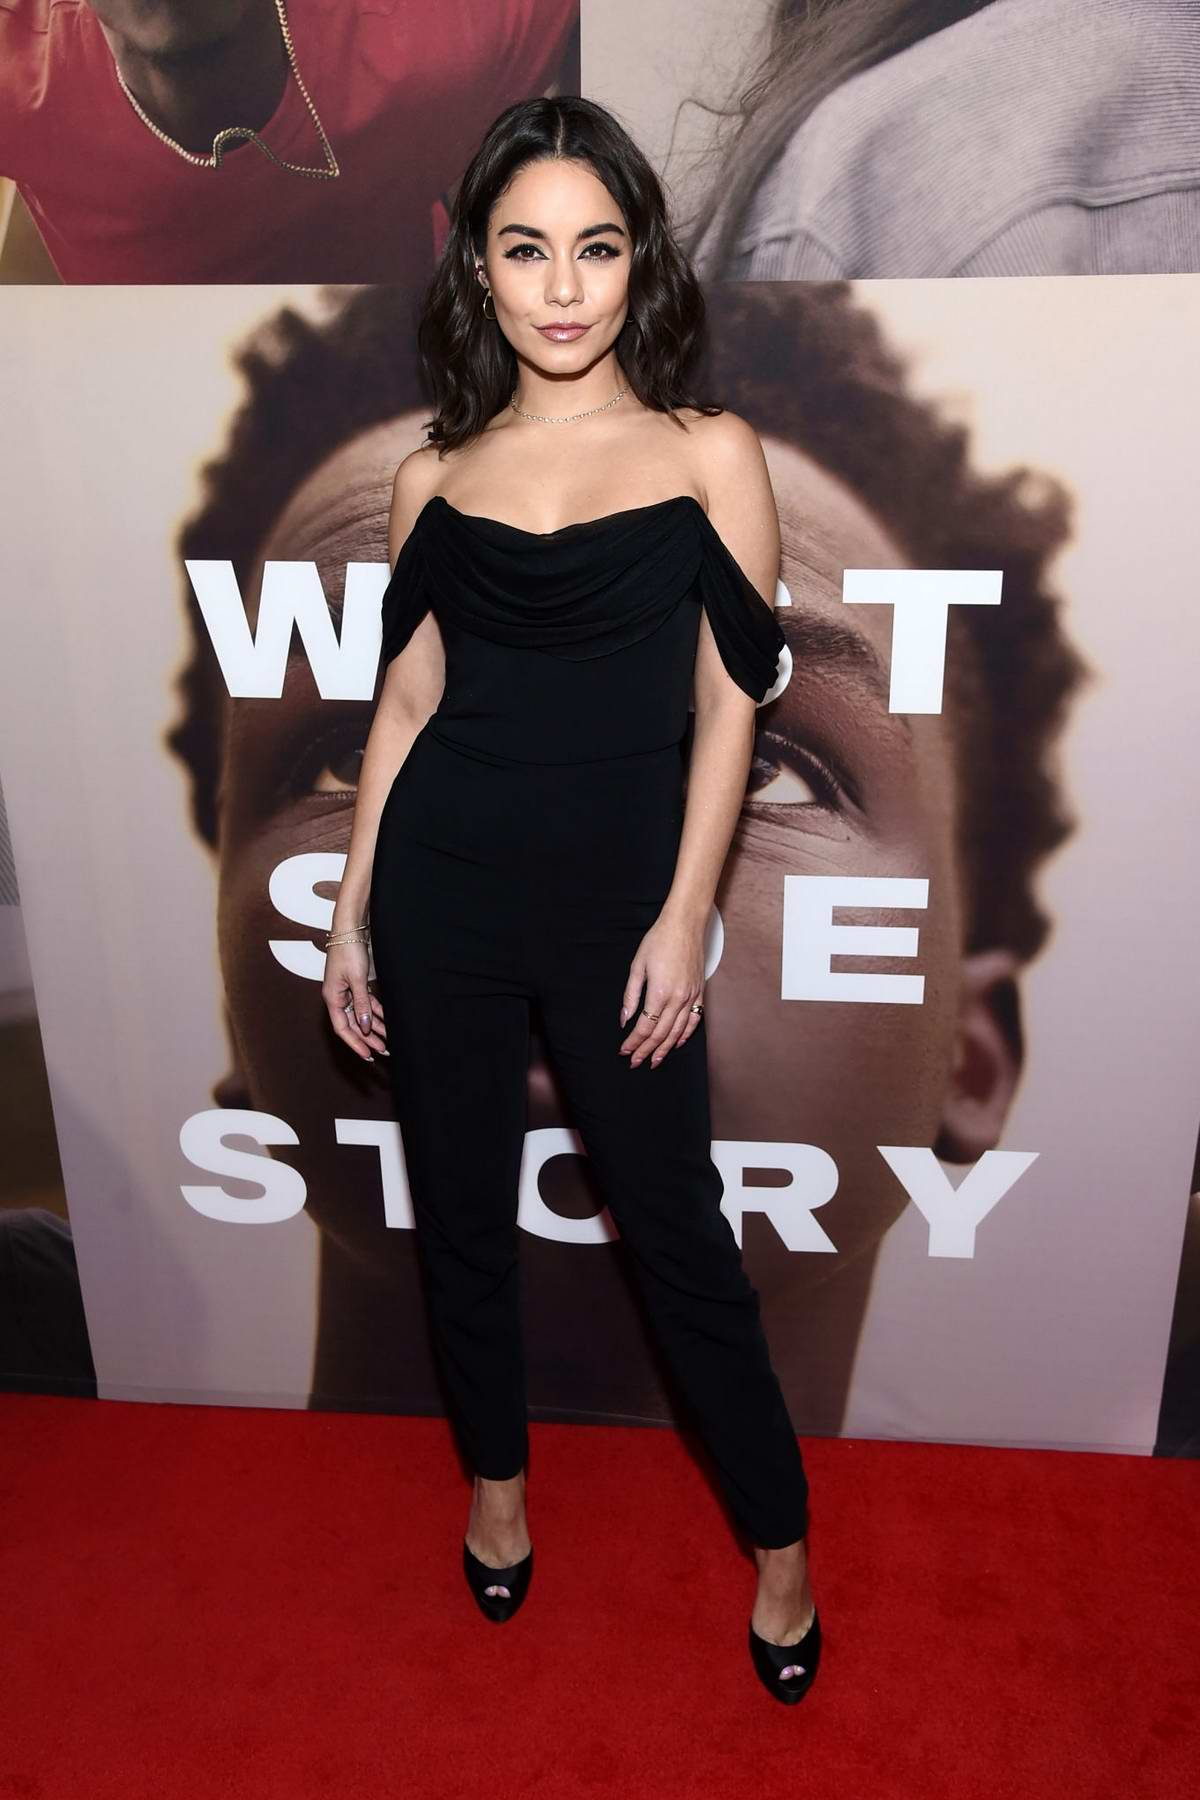 Vanessa Hudgens attends 'West Side Story' opening night on Broadway in New York City